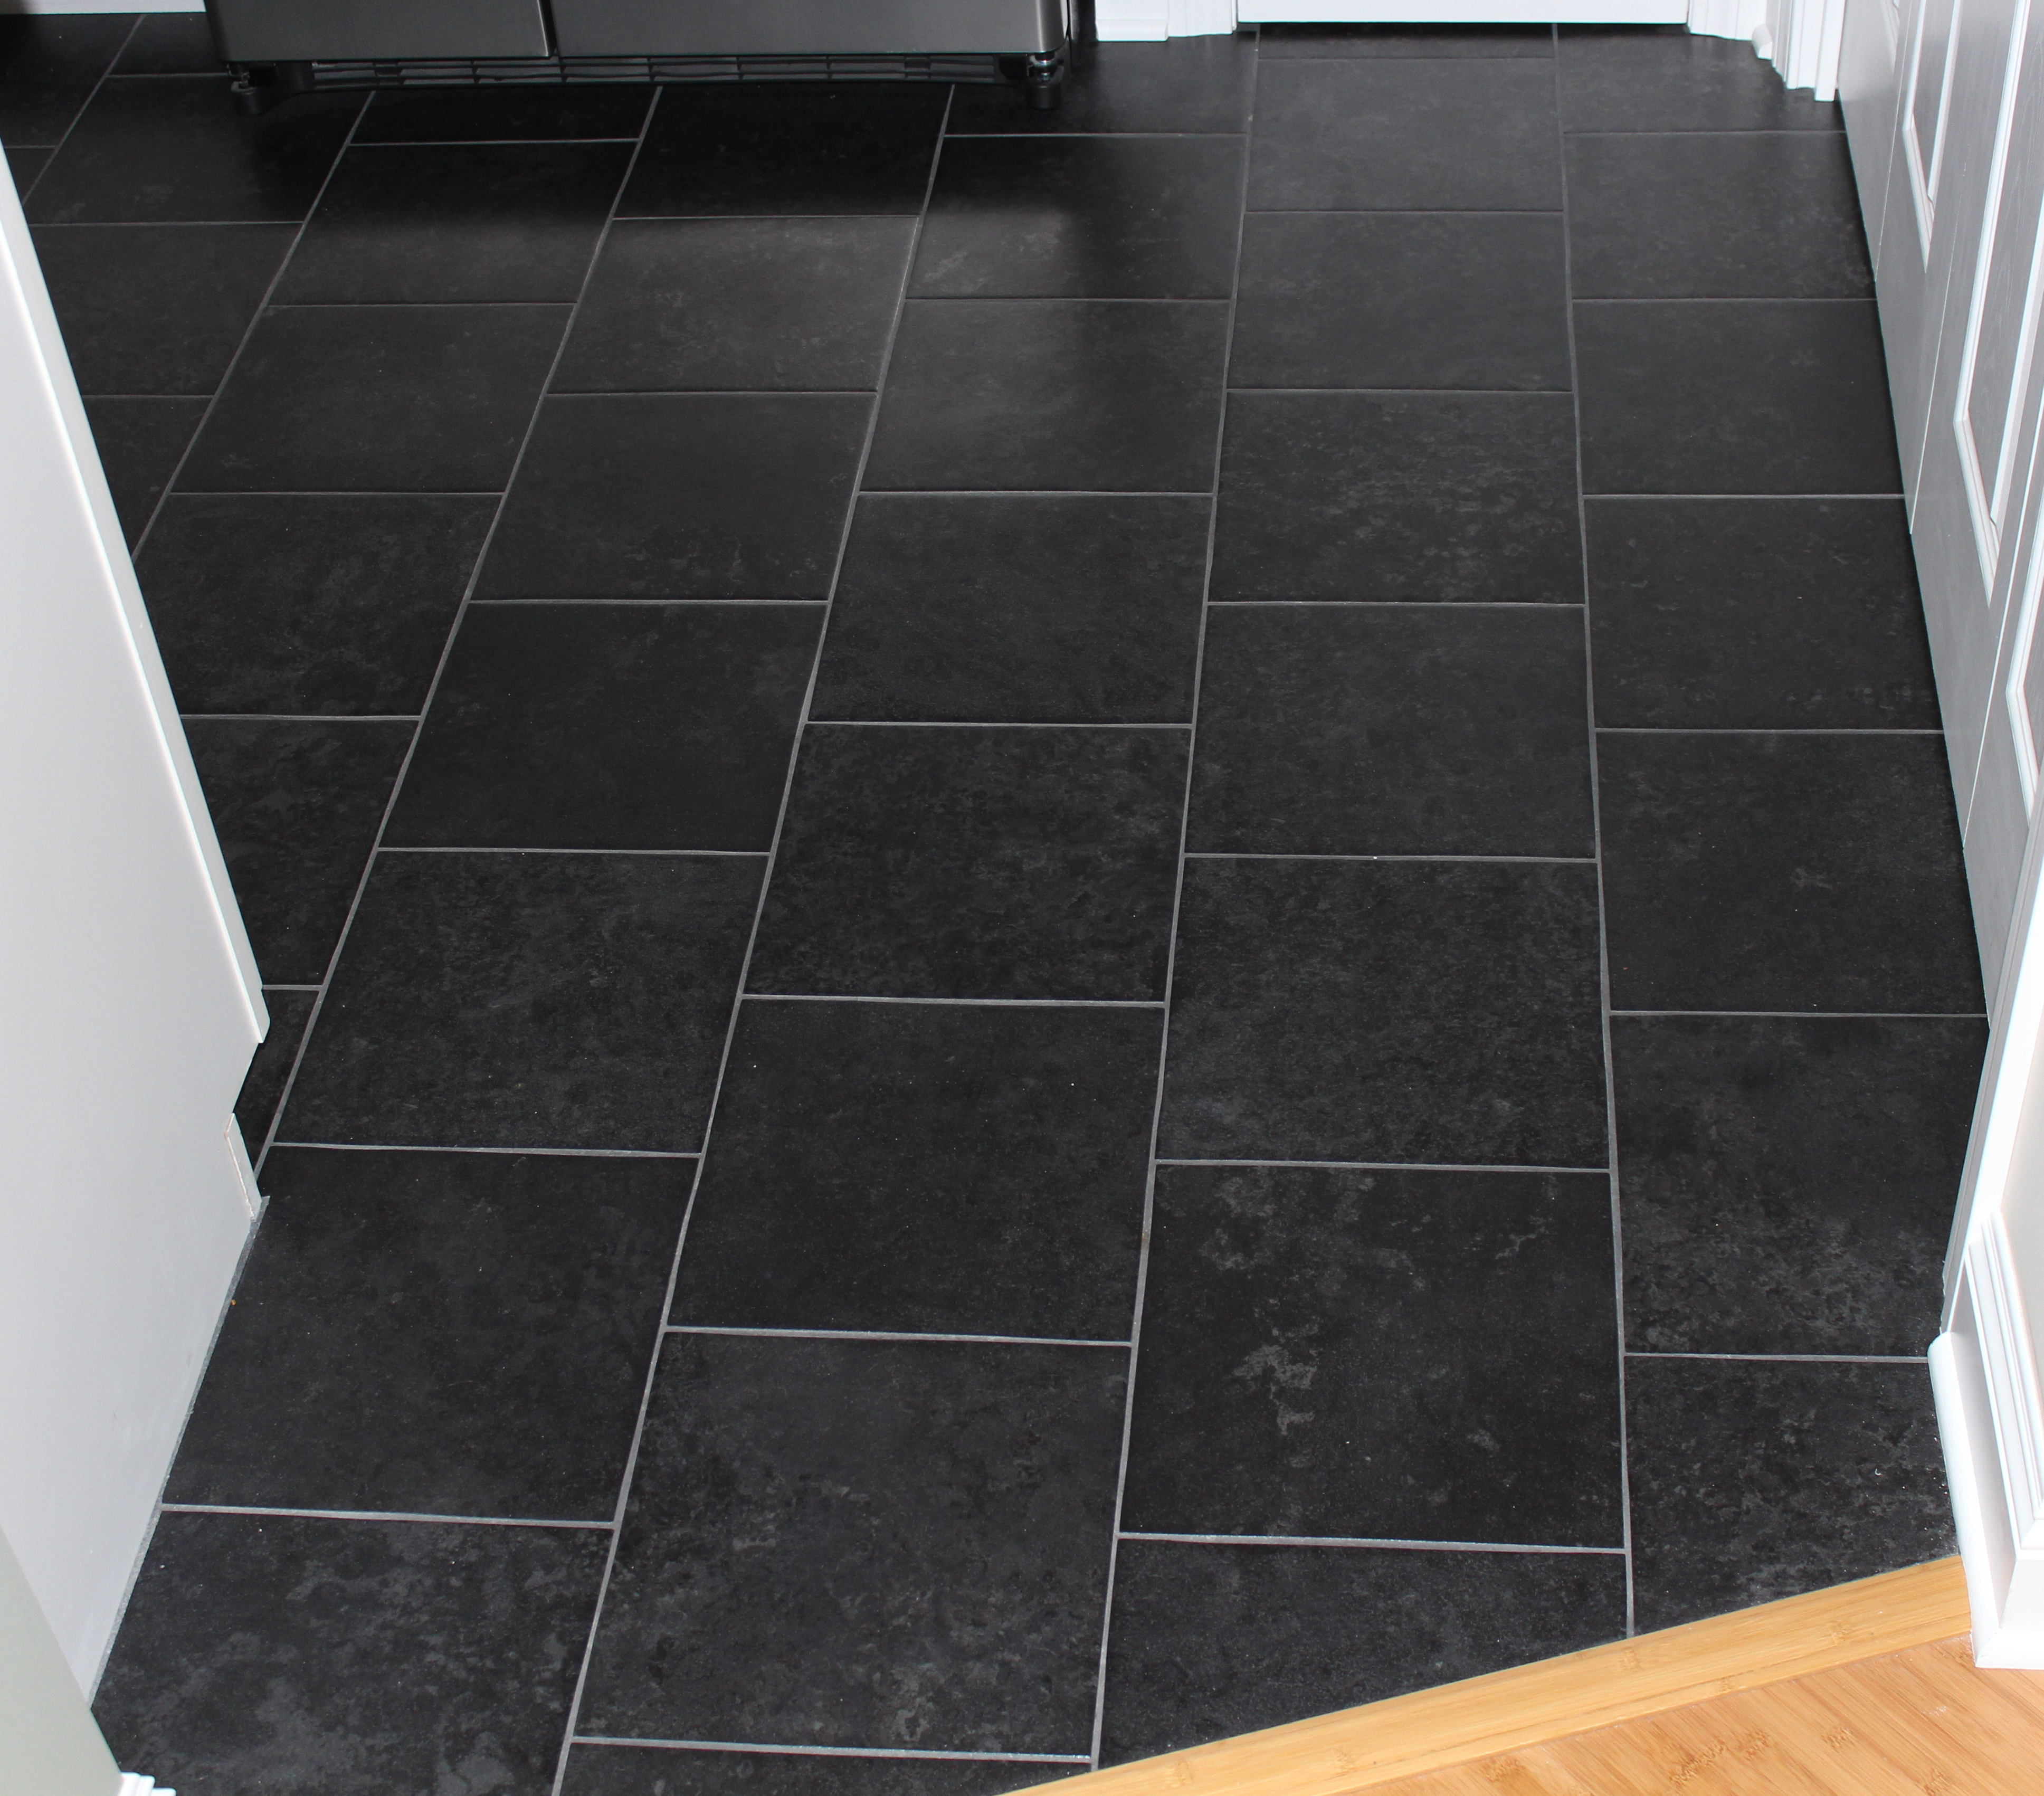 Porcelain Tile For Kitchen Floor Black Porcelain Tile Floorjpg